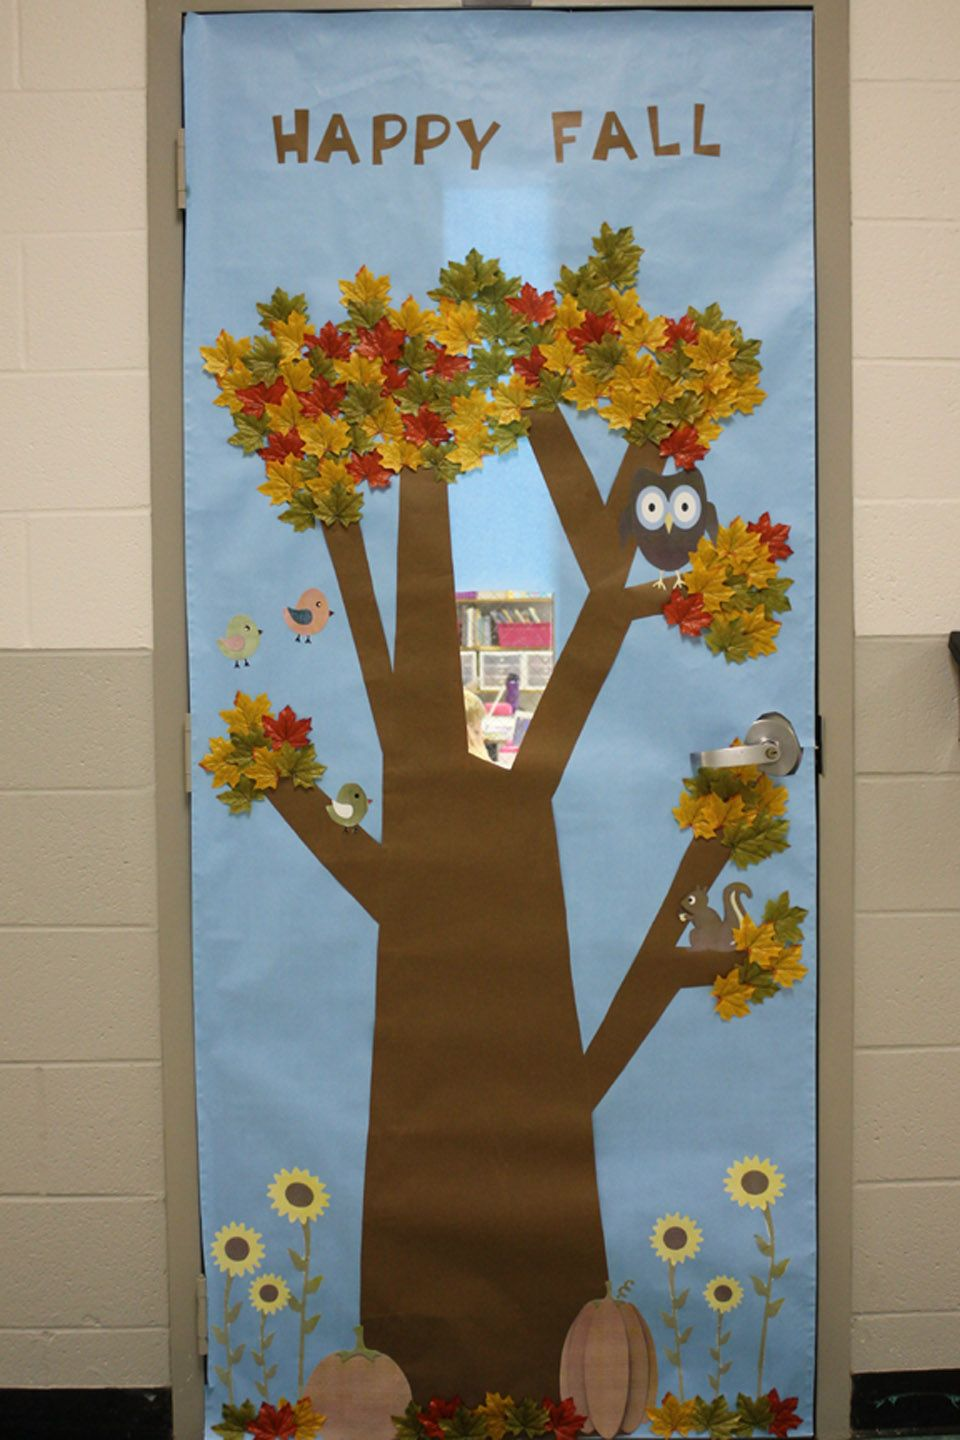 Fall decorations for classroom - Happy Fall Classroom Door Cover